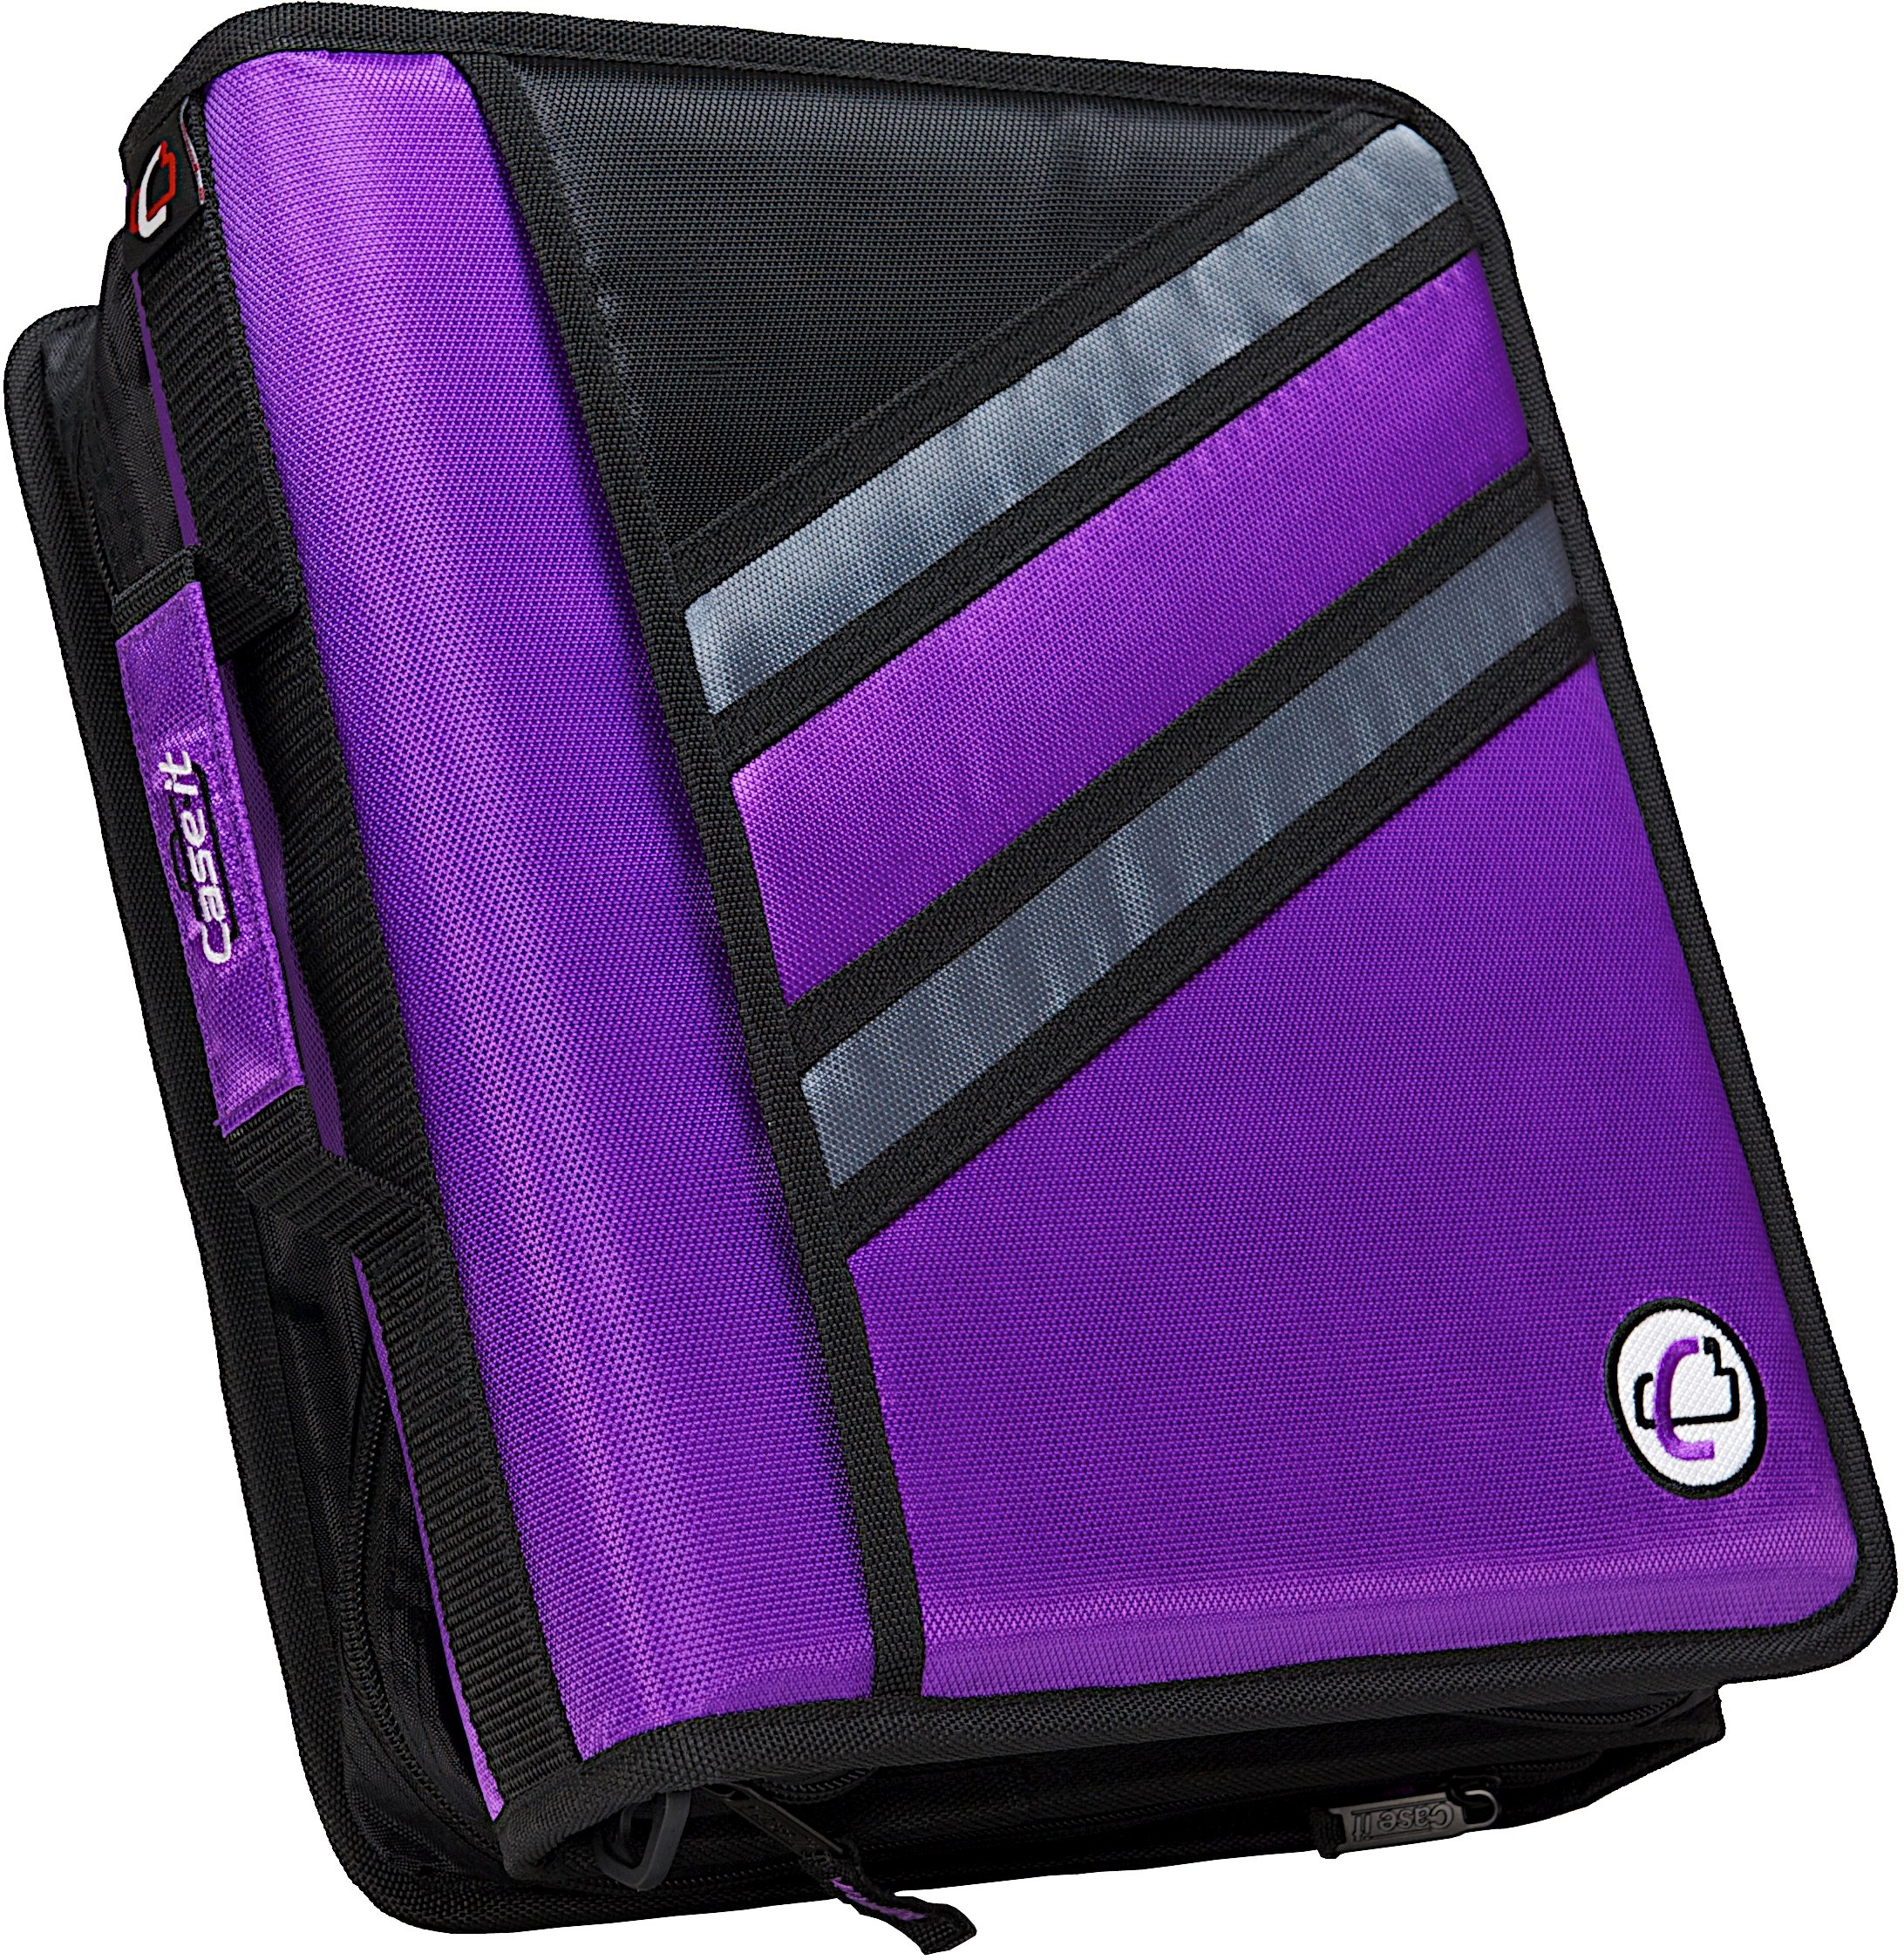 Case-it Z-Binder Two-in-One 1.5-Inch D-Ring Zipper Binders, Purple, Z-176-PUR